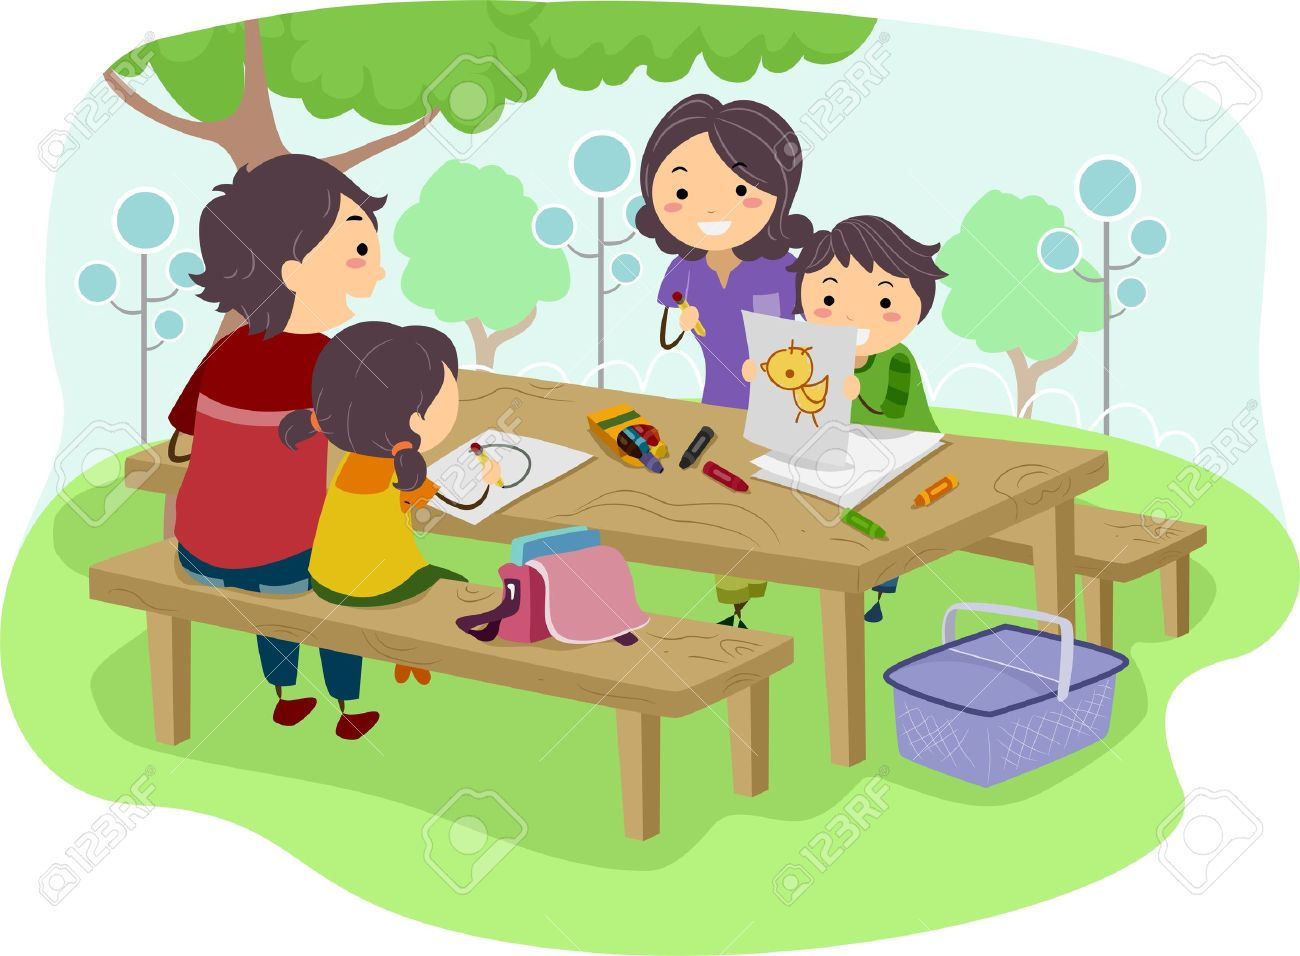 1300x956 Illustration Of A Family With Kids Drawing While Having Their